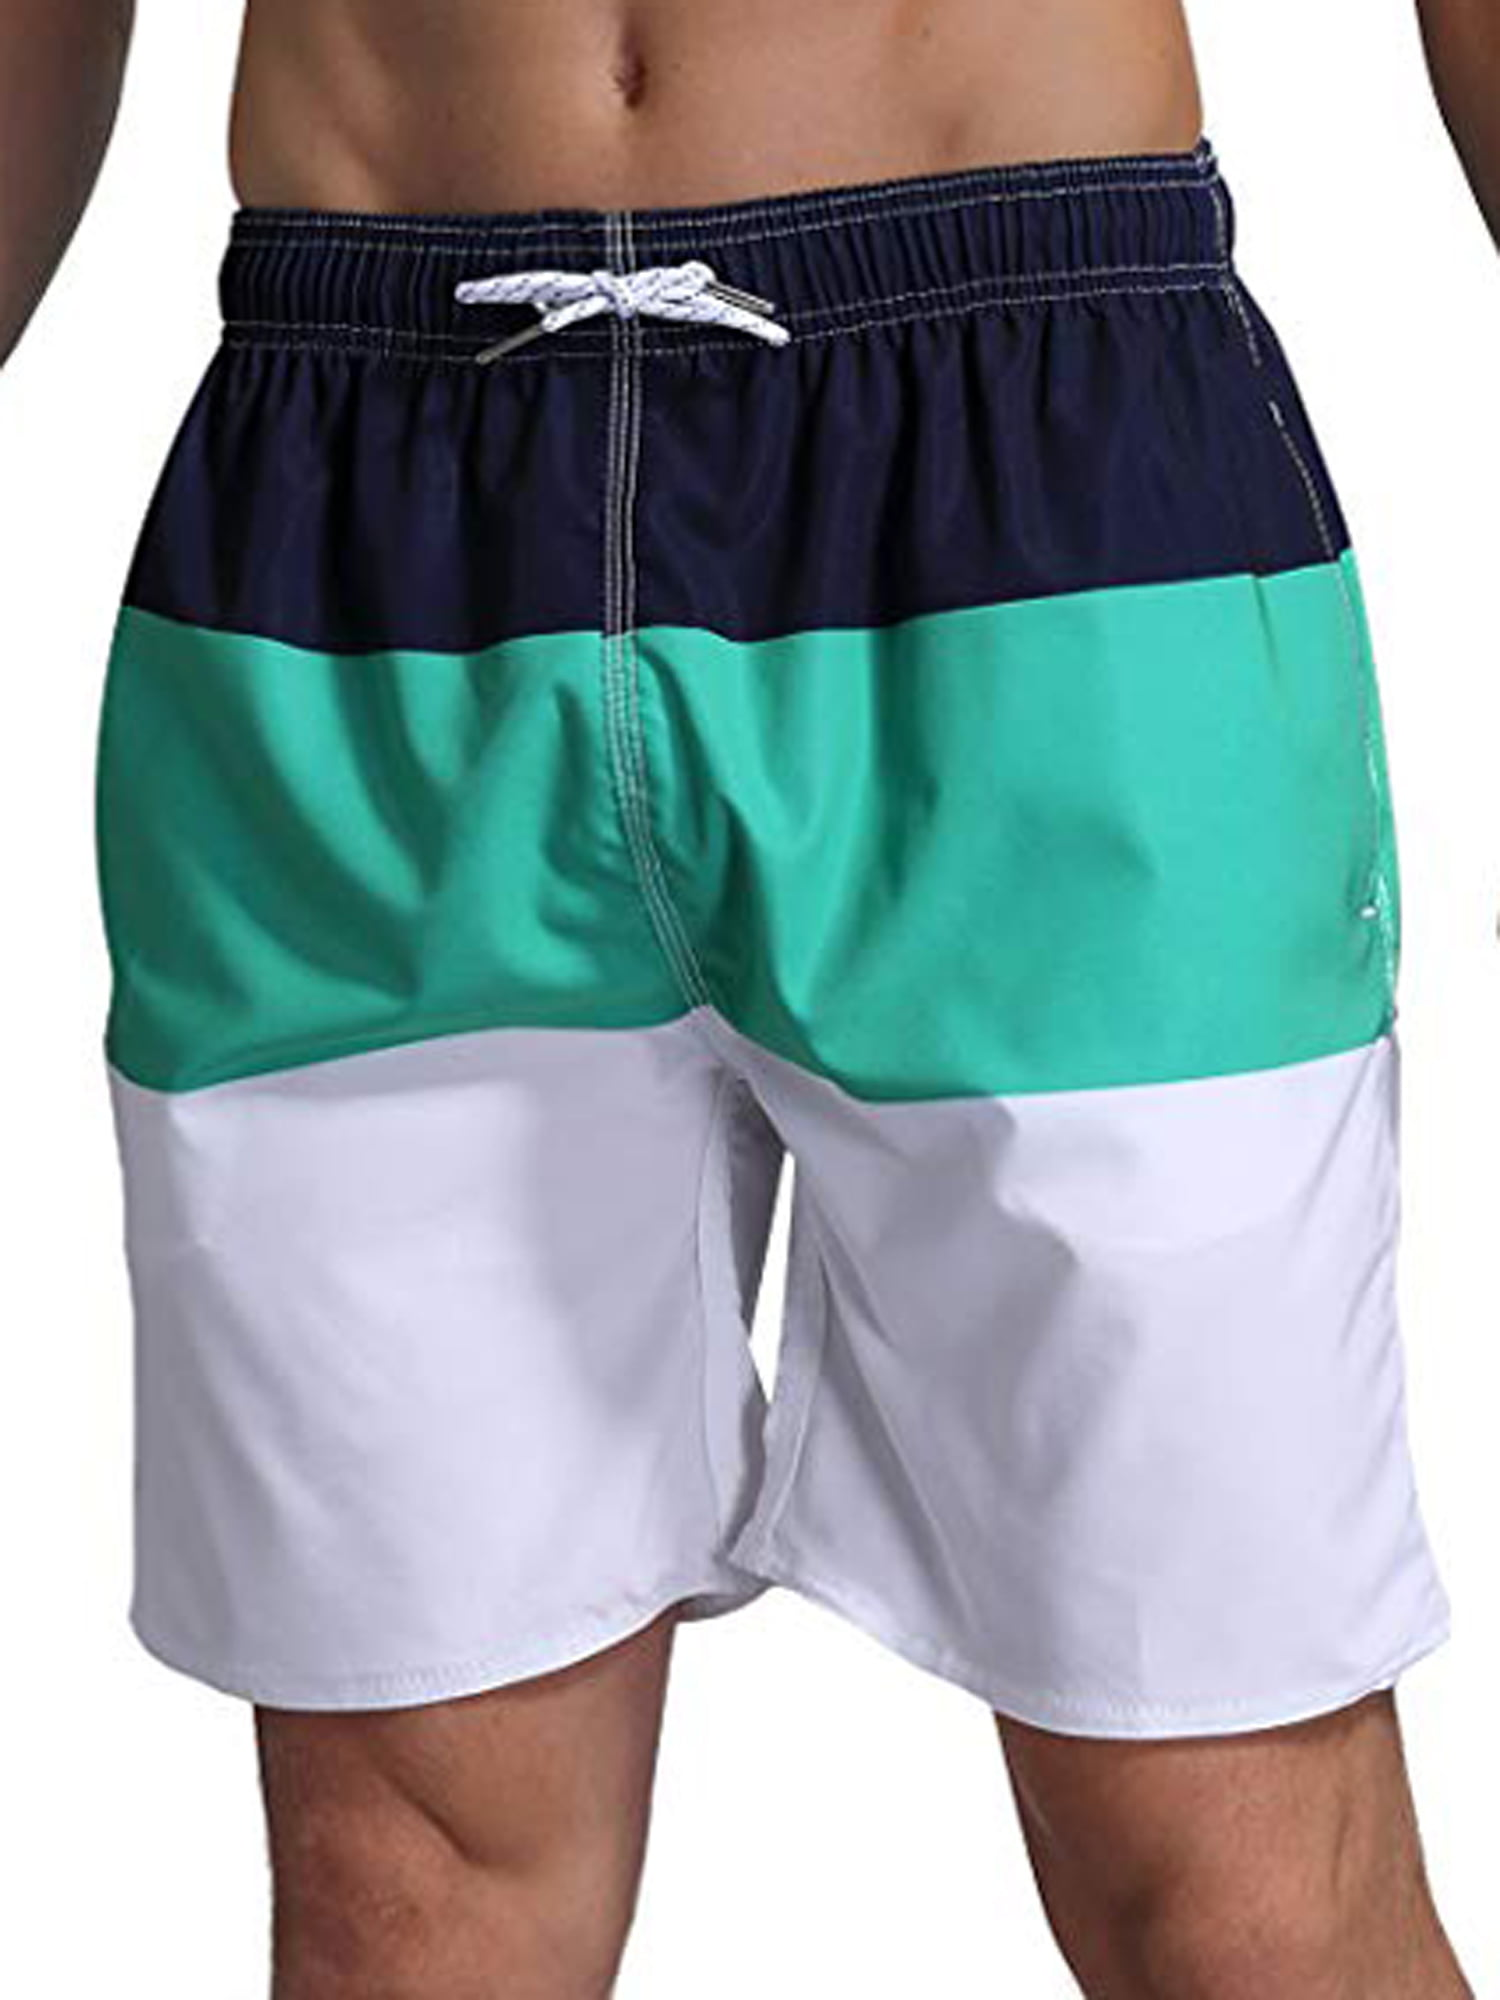 Mens Galaxy Sky Hot Air Balloon Quick Drying Ultra Light Beach Pants Swim Trunks